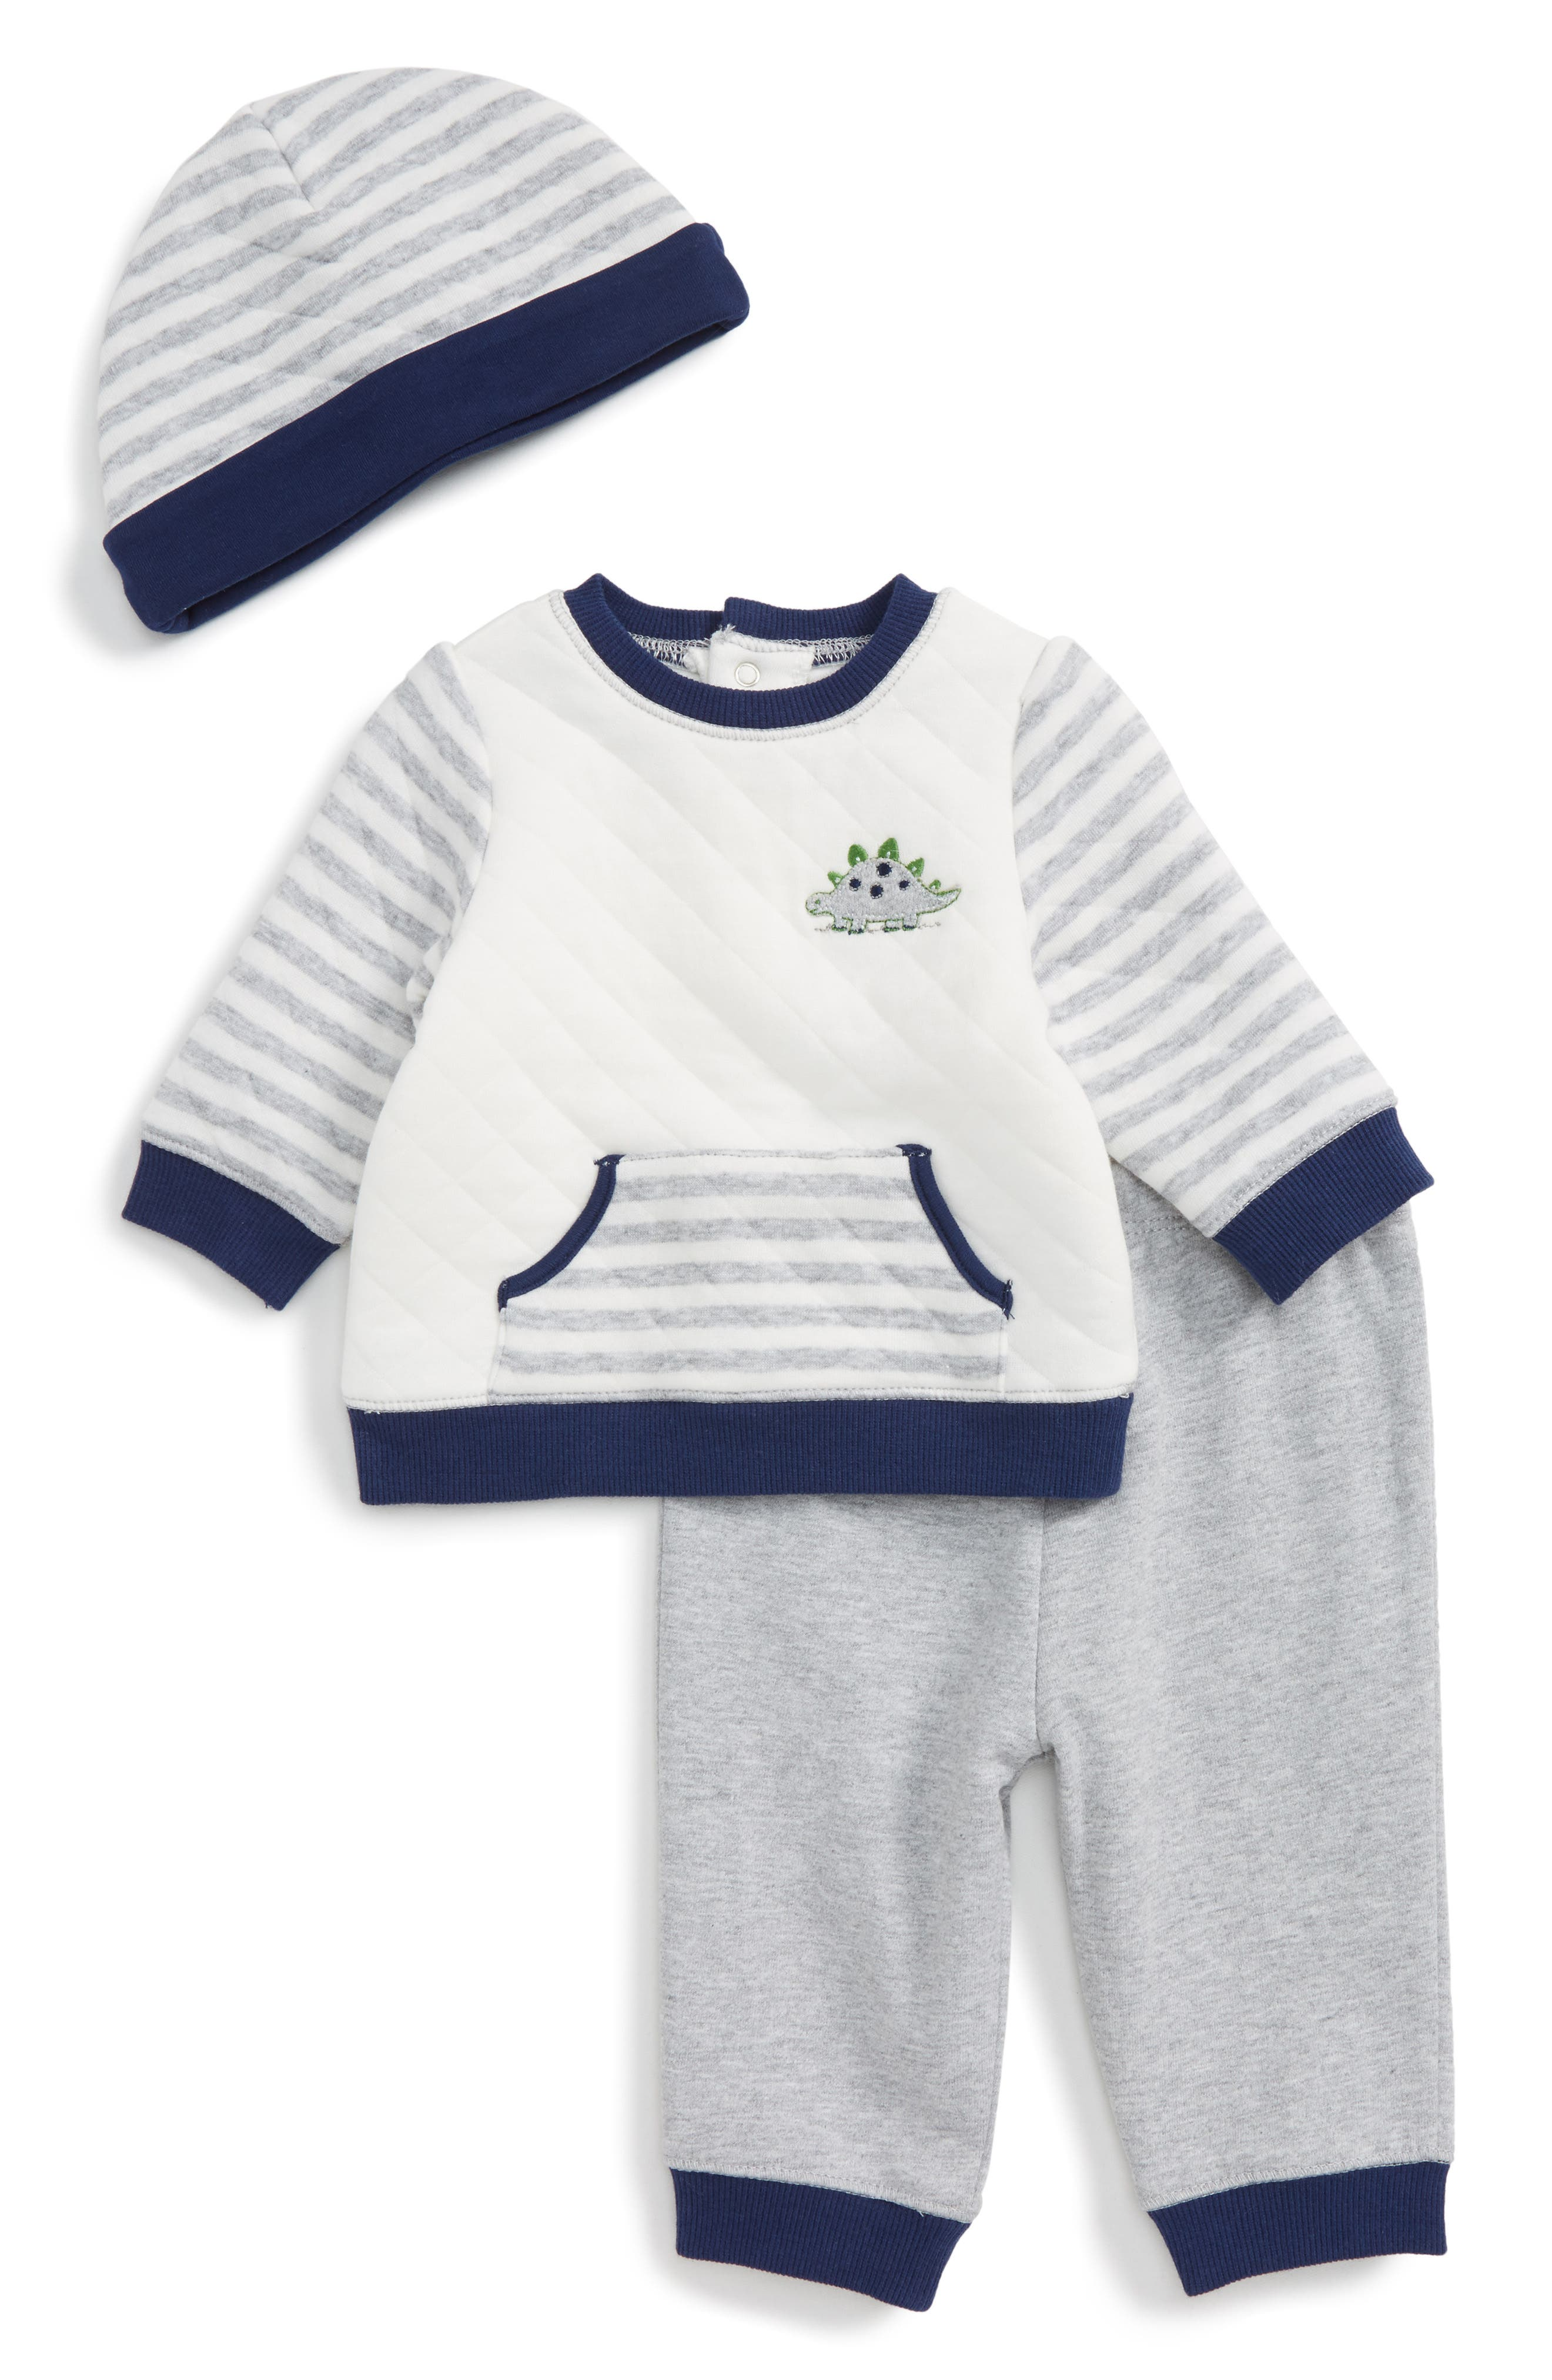 Nordstrom baby boy grey tee shirt and blue and white ikat shorts set. Shorts have a grey fabric waistband that matches the Tee. This is % cotton and the tee and waistband are very soft against baby.